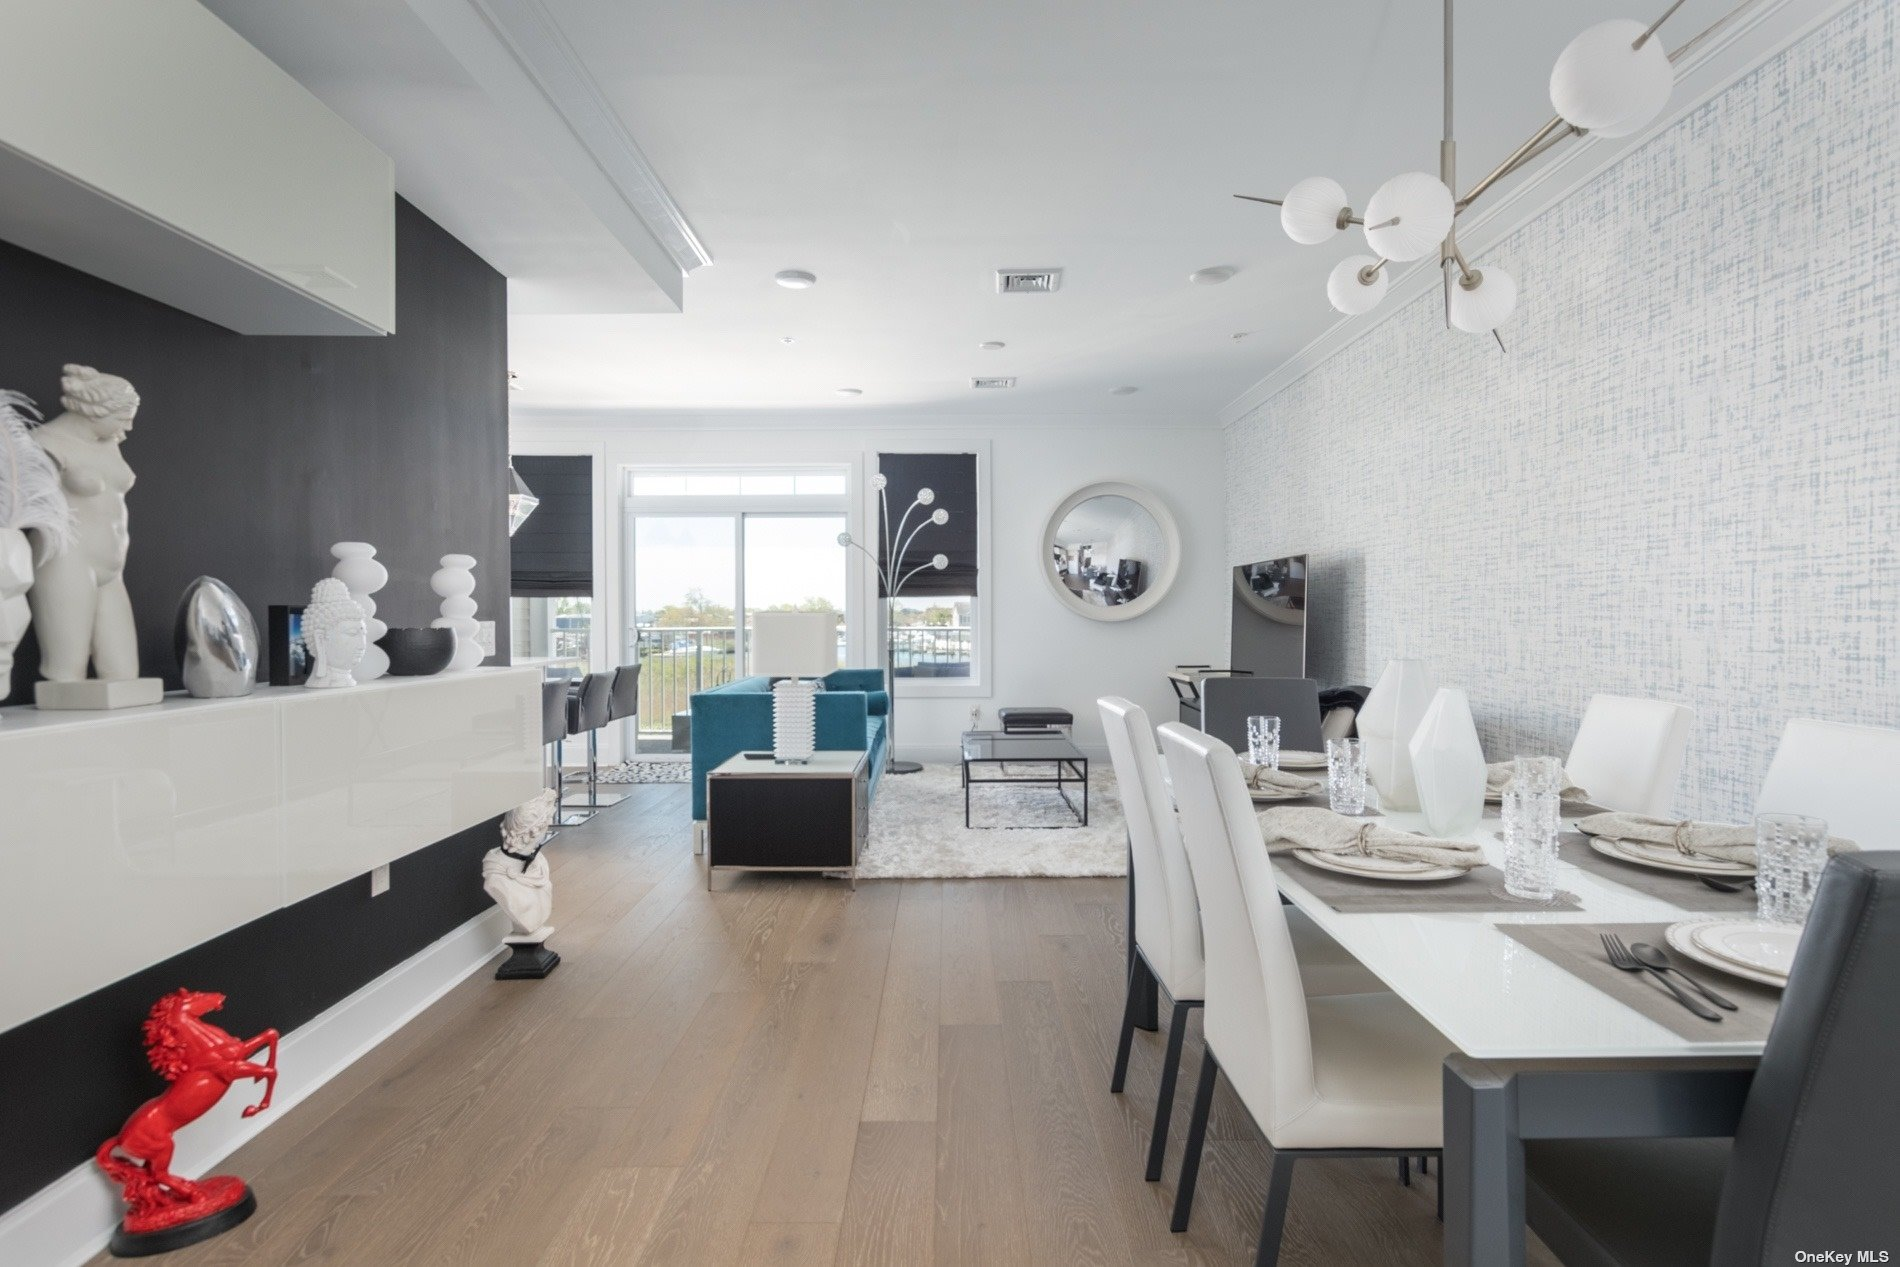 This is a builders unit. He meticulously detailed the interior with top of the line finishes. Upgrades include decorative backsplash, crown molding, wallpaper accent walls (Philip Jeffries), Hudson Valley Lighting, shiplap accent walls and much more.  You will not be disappointed in this unit, you will feel like you are in your own private showroom. 2022 taxes have been successfully revised and will be reduced drastically